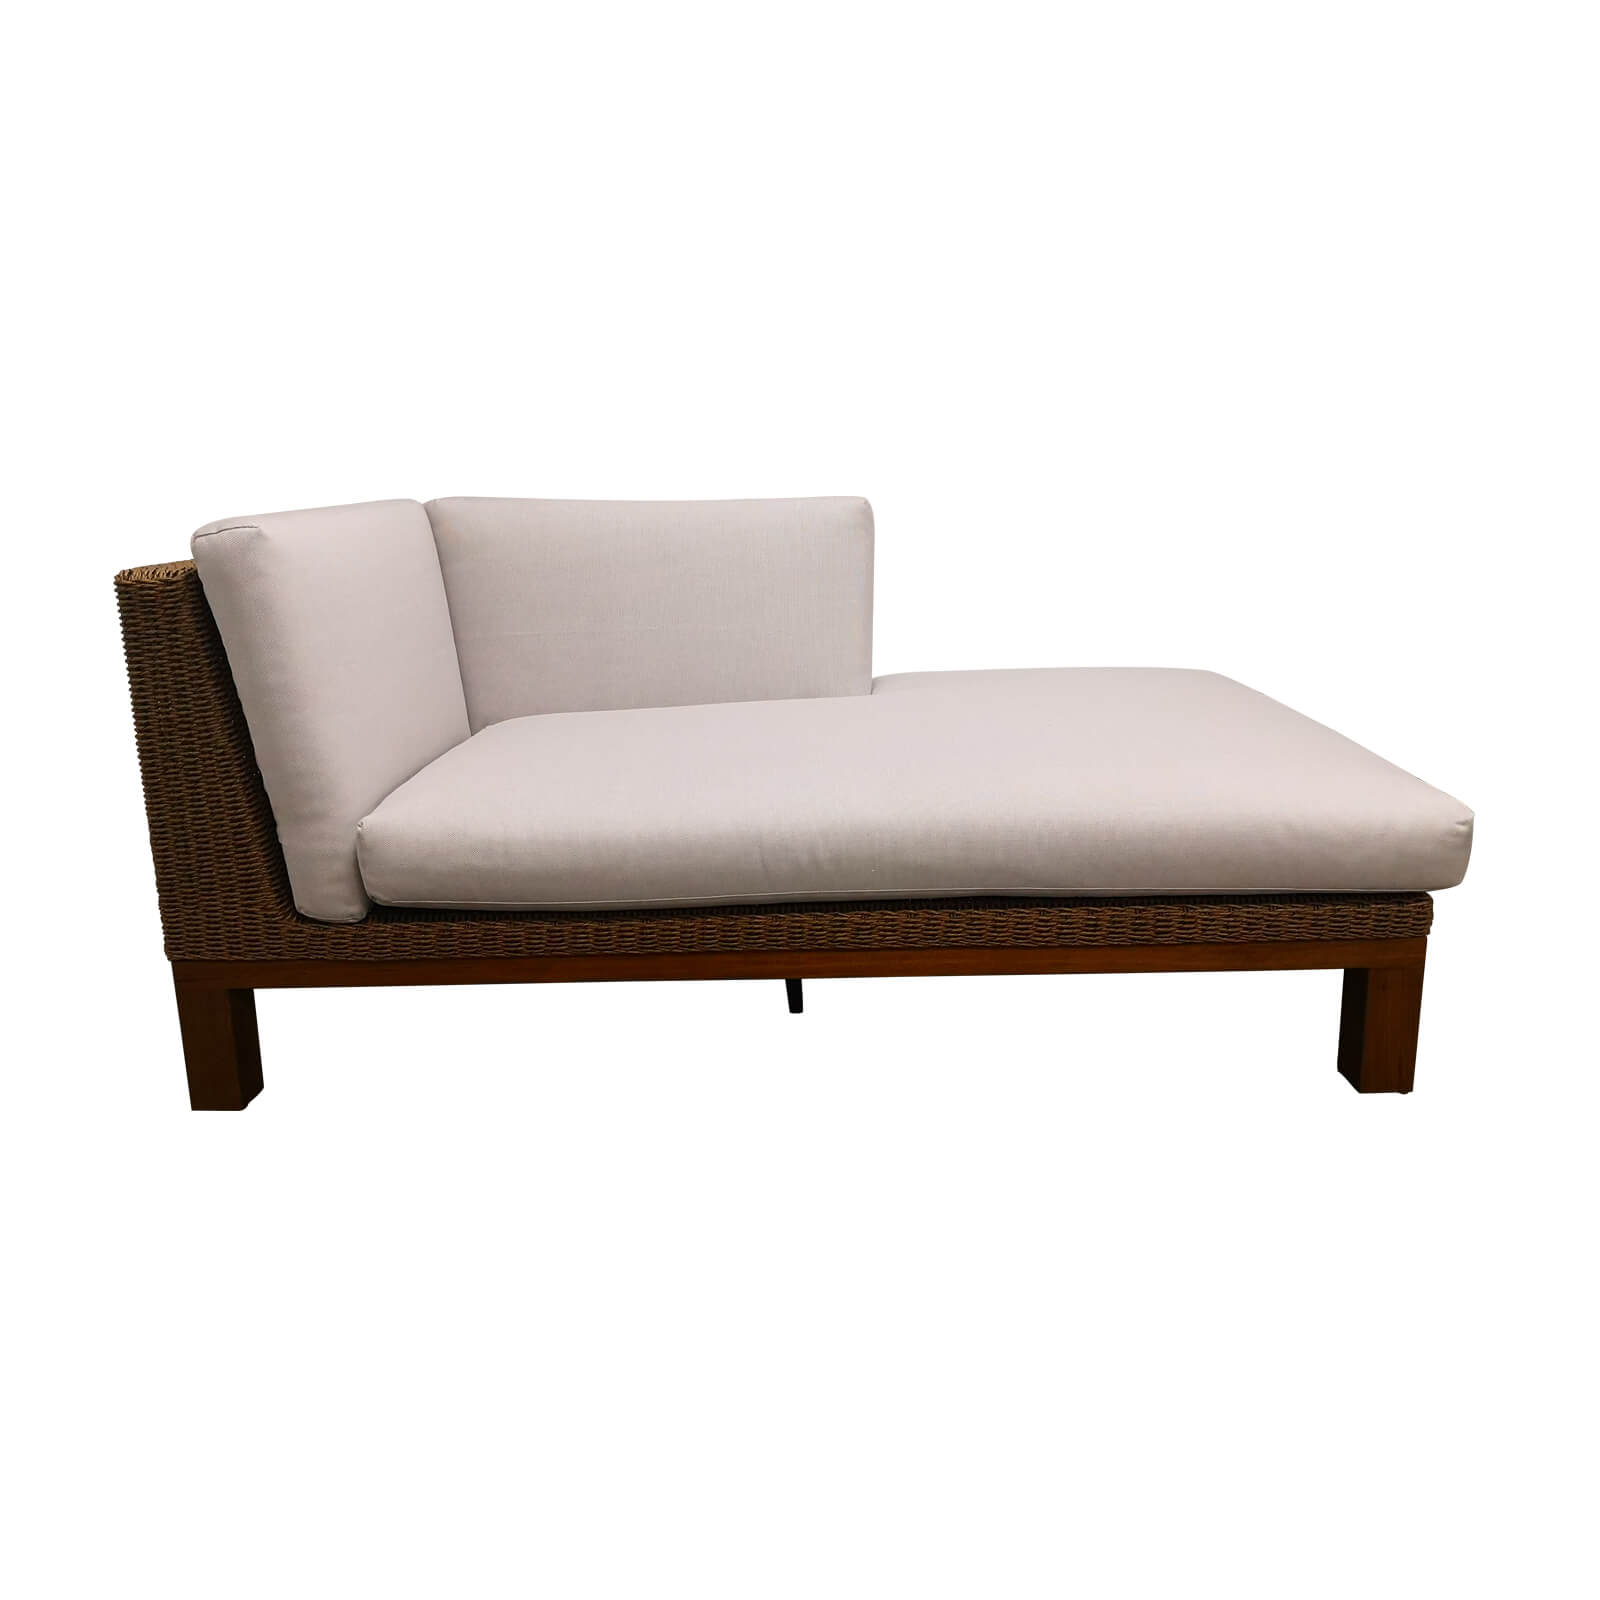 Two Design Lovers outdoor furniture teak and wicker chaise Osier Belle Joli